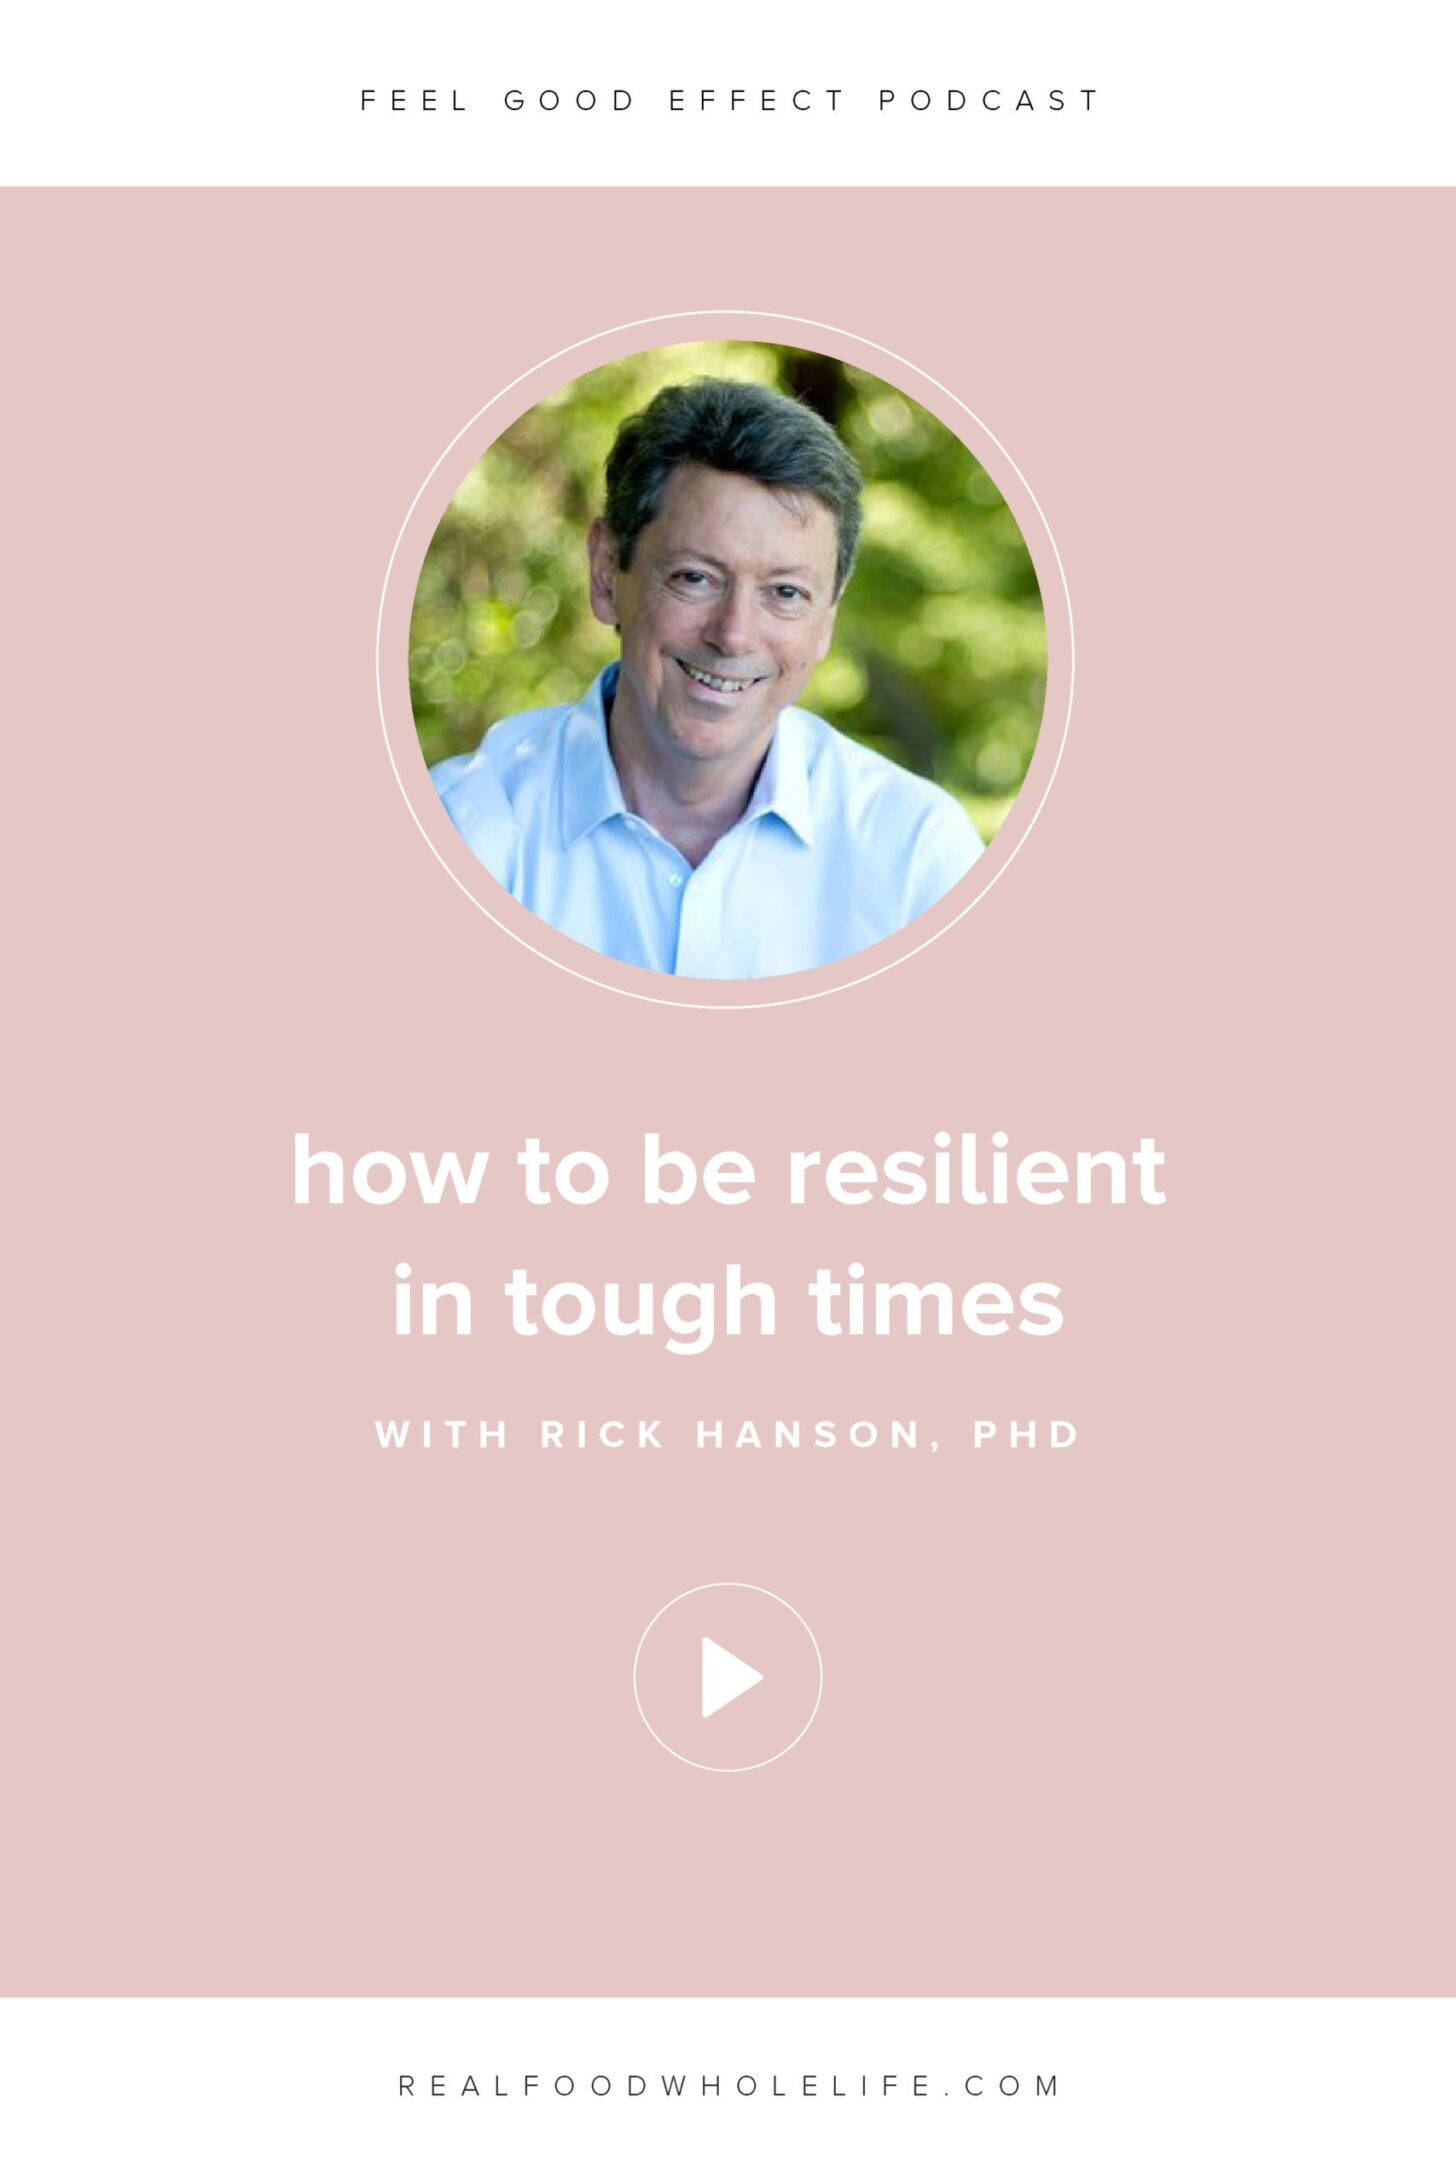 Image of Rick Hanson PhD on the Feel Good Effect Podcast